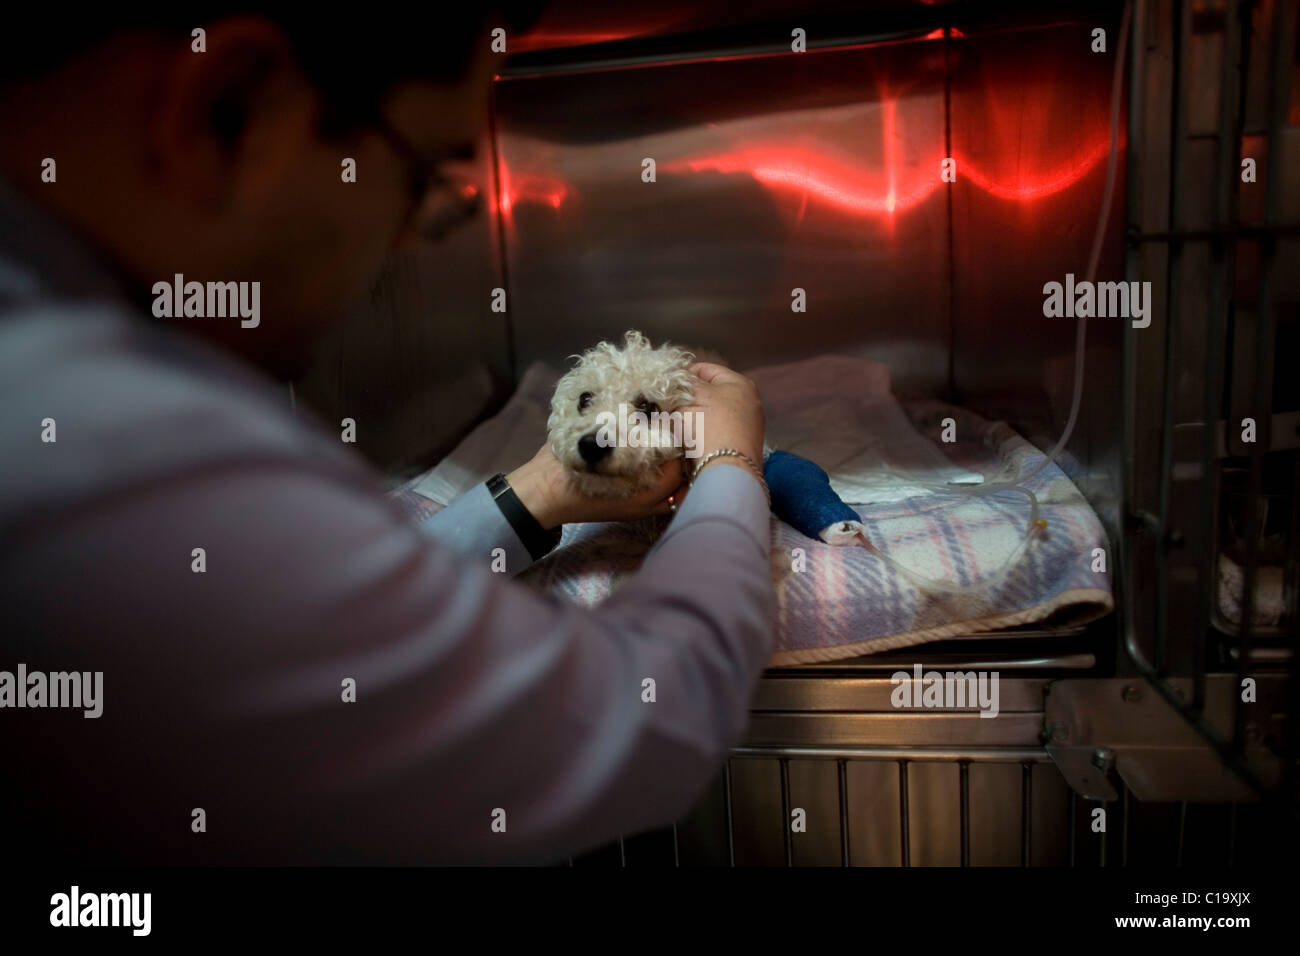 A man strokes his Poodle dog as he recovers from an operation at a Pet Hospital in Condesa, Mexico City, Mexico. - Stock Image